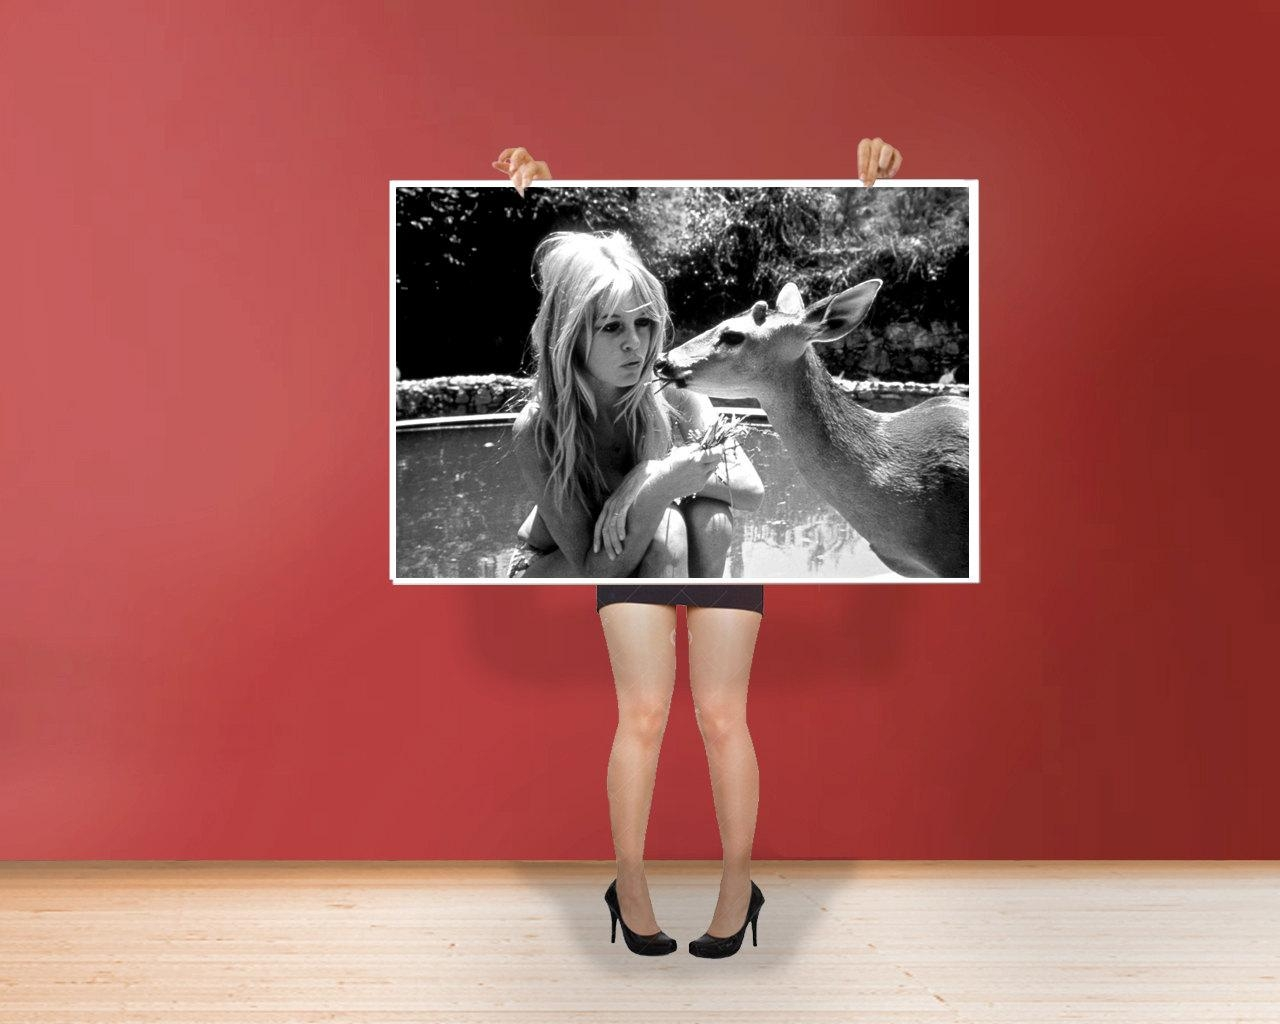 Brigitte Bardot With Deer Classic Art Print Poster Cotton Inside Steve Mcqueen Wall Art (View 20 of 20)